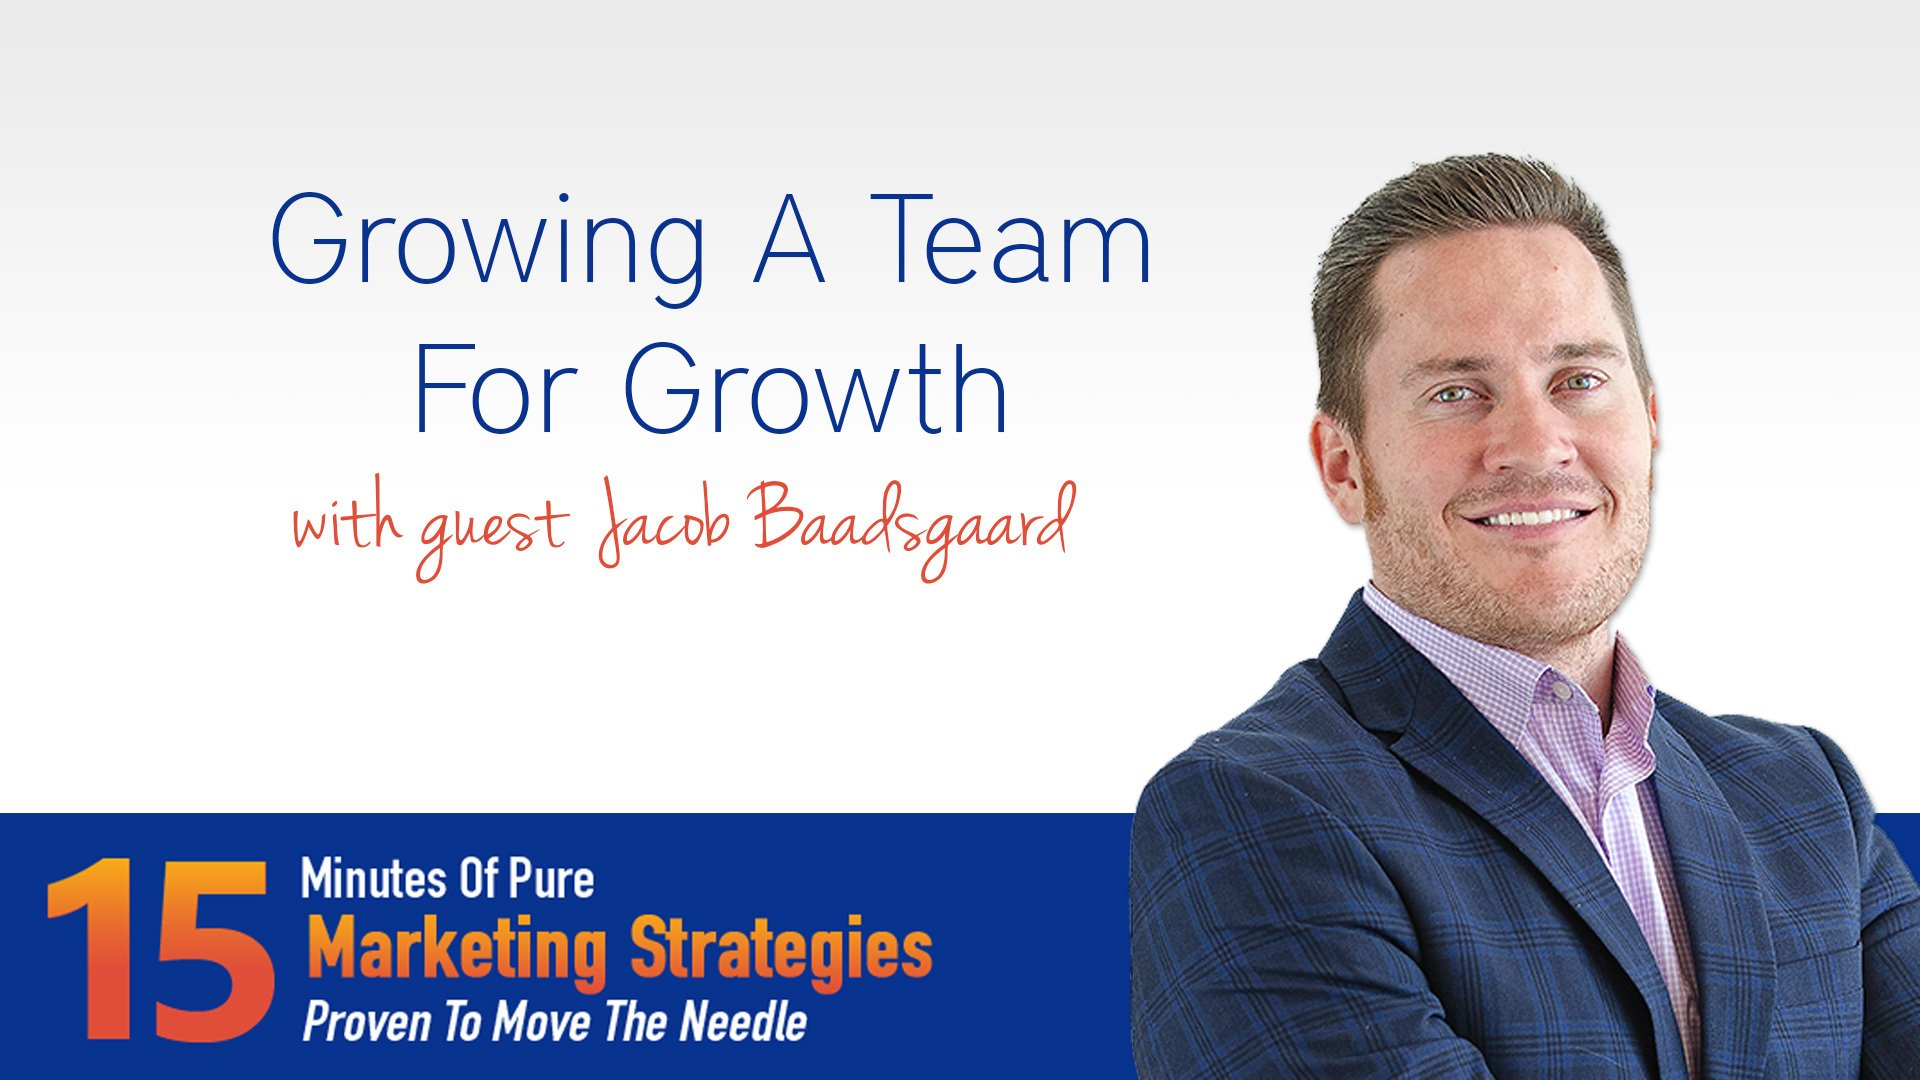 Growing A Team For Growth